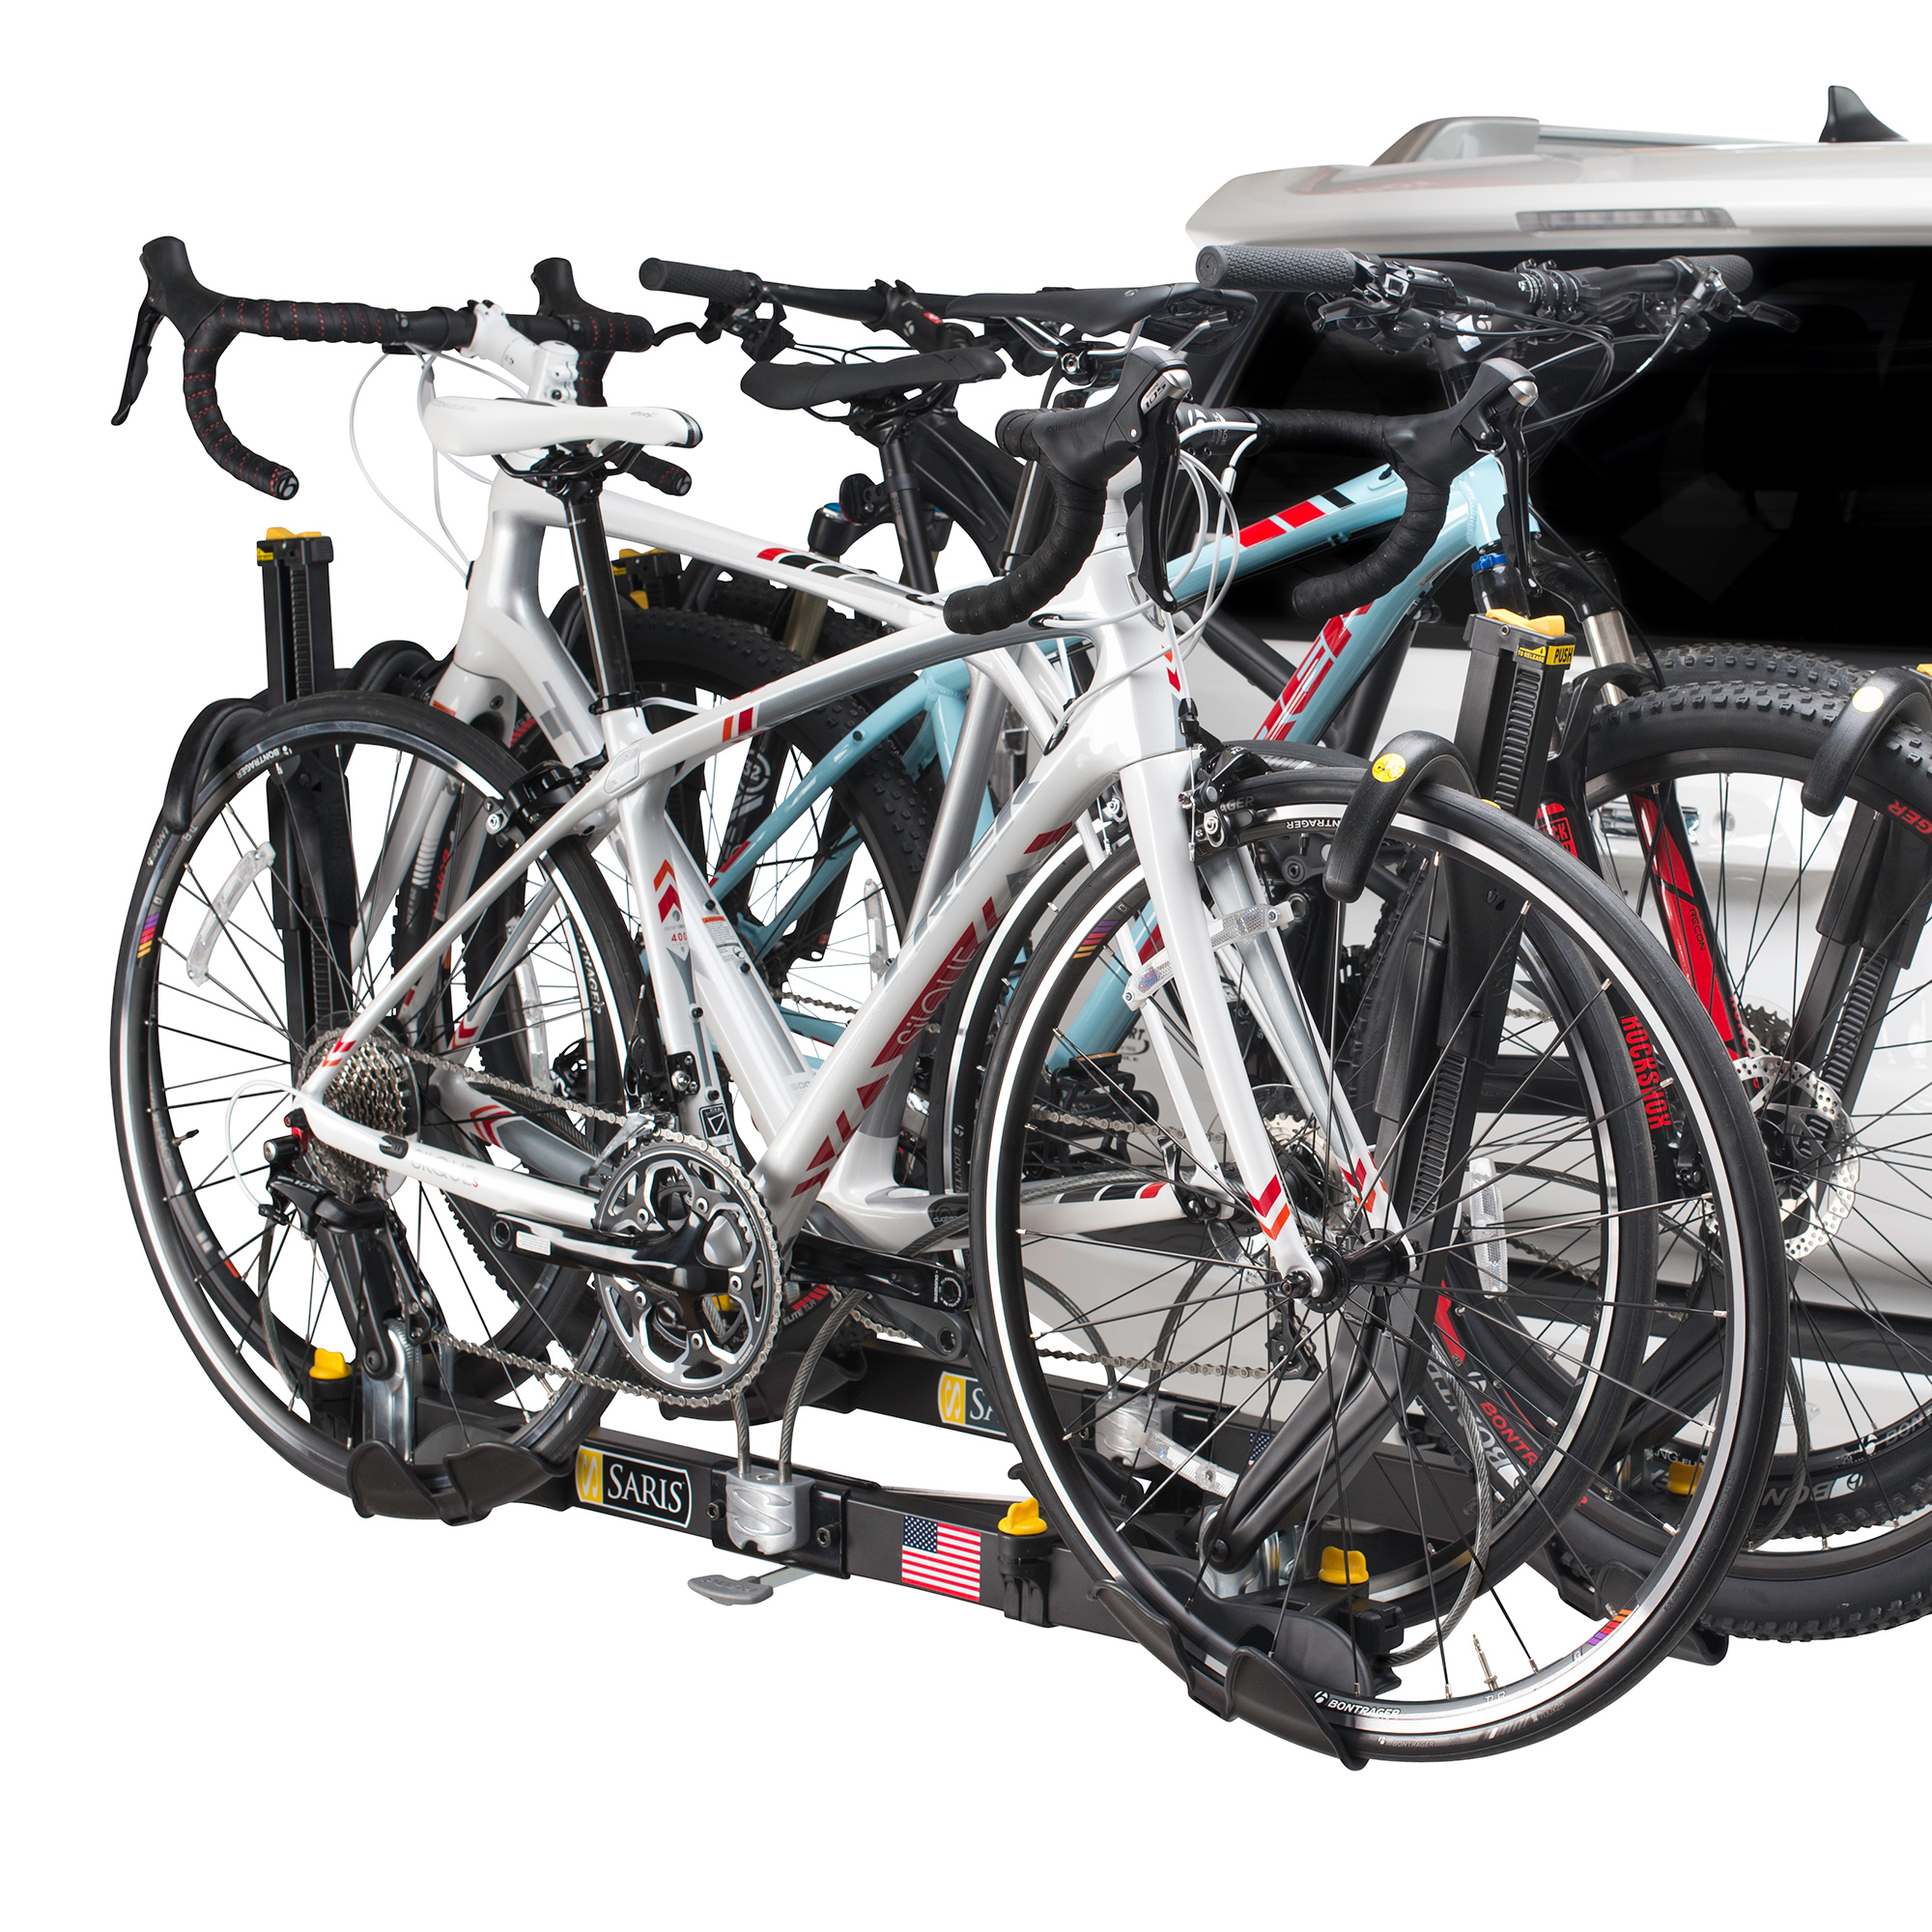 carry buy easy no bikes the towbar racks needed rack and thule use carriers with velocompact accessories so are base up mount category landscape option install they ljunghusen bike ls to online shop receiver is